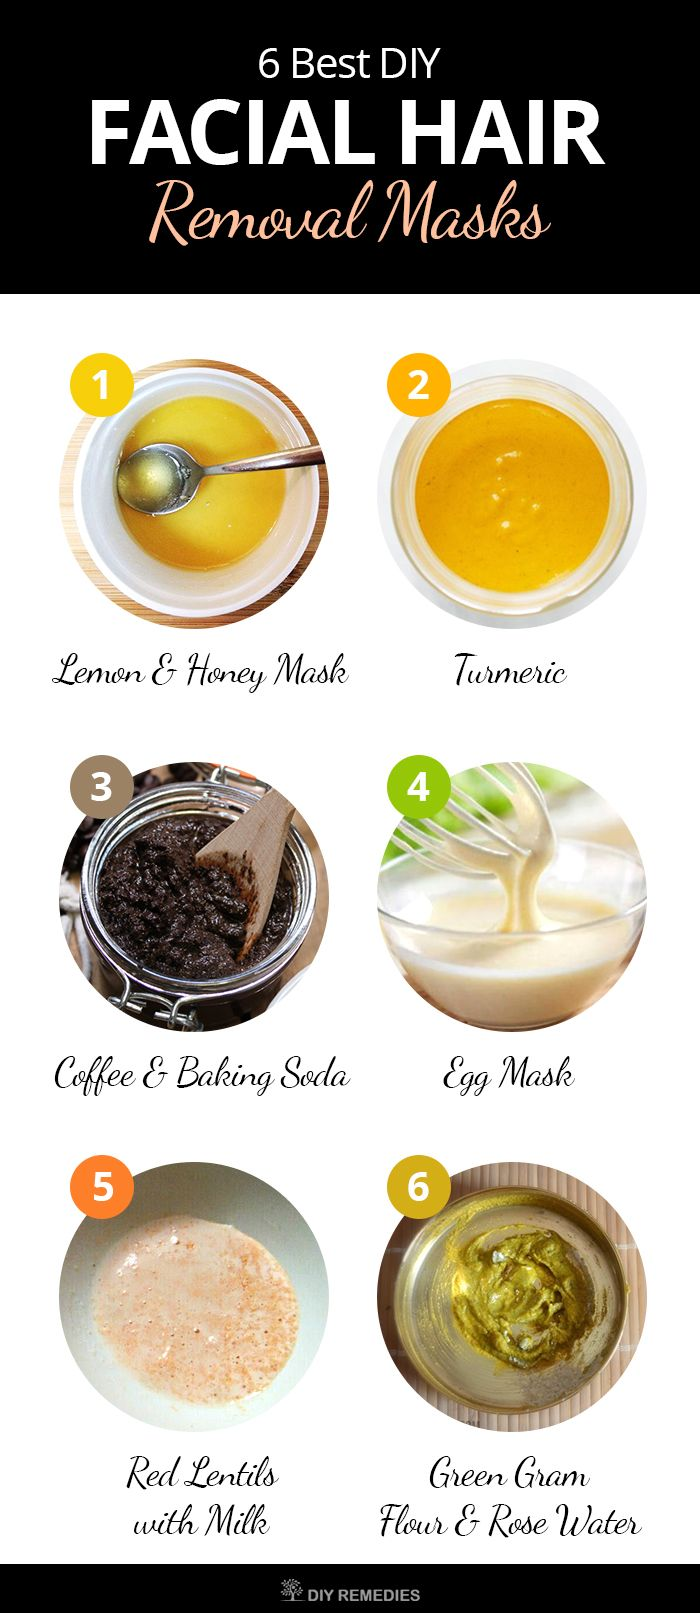 DIY Homemade Facial Hair Removal Masks    Natural remedies will definitely work well and the only thing we need is to stick to the routine. Have a look at some effective unwanted facial hair removal masks and try it to enjoy smooth skin.  #DIYRemdies